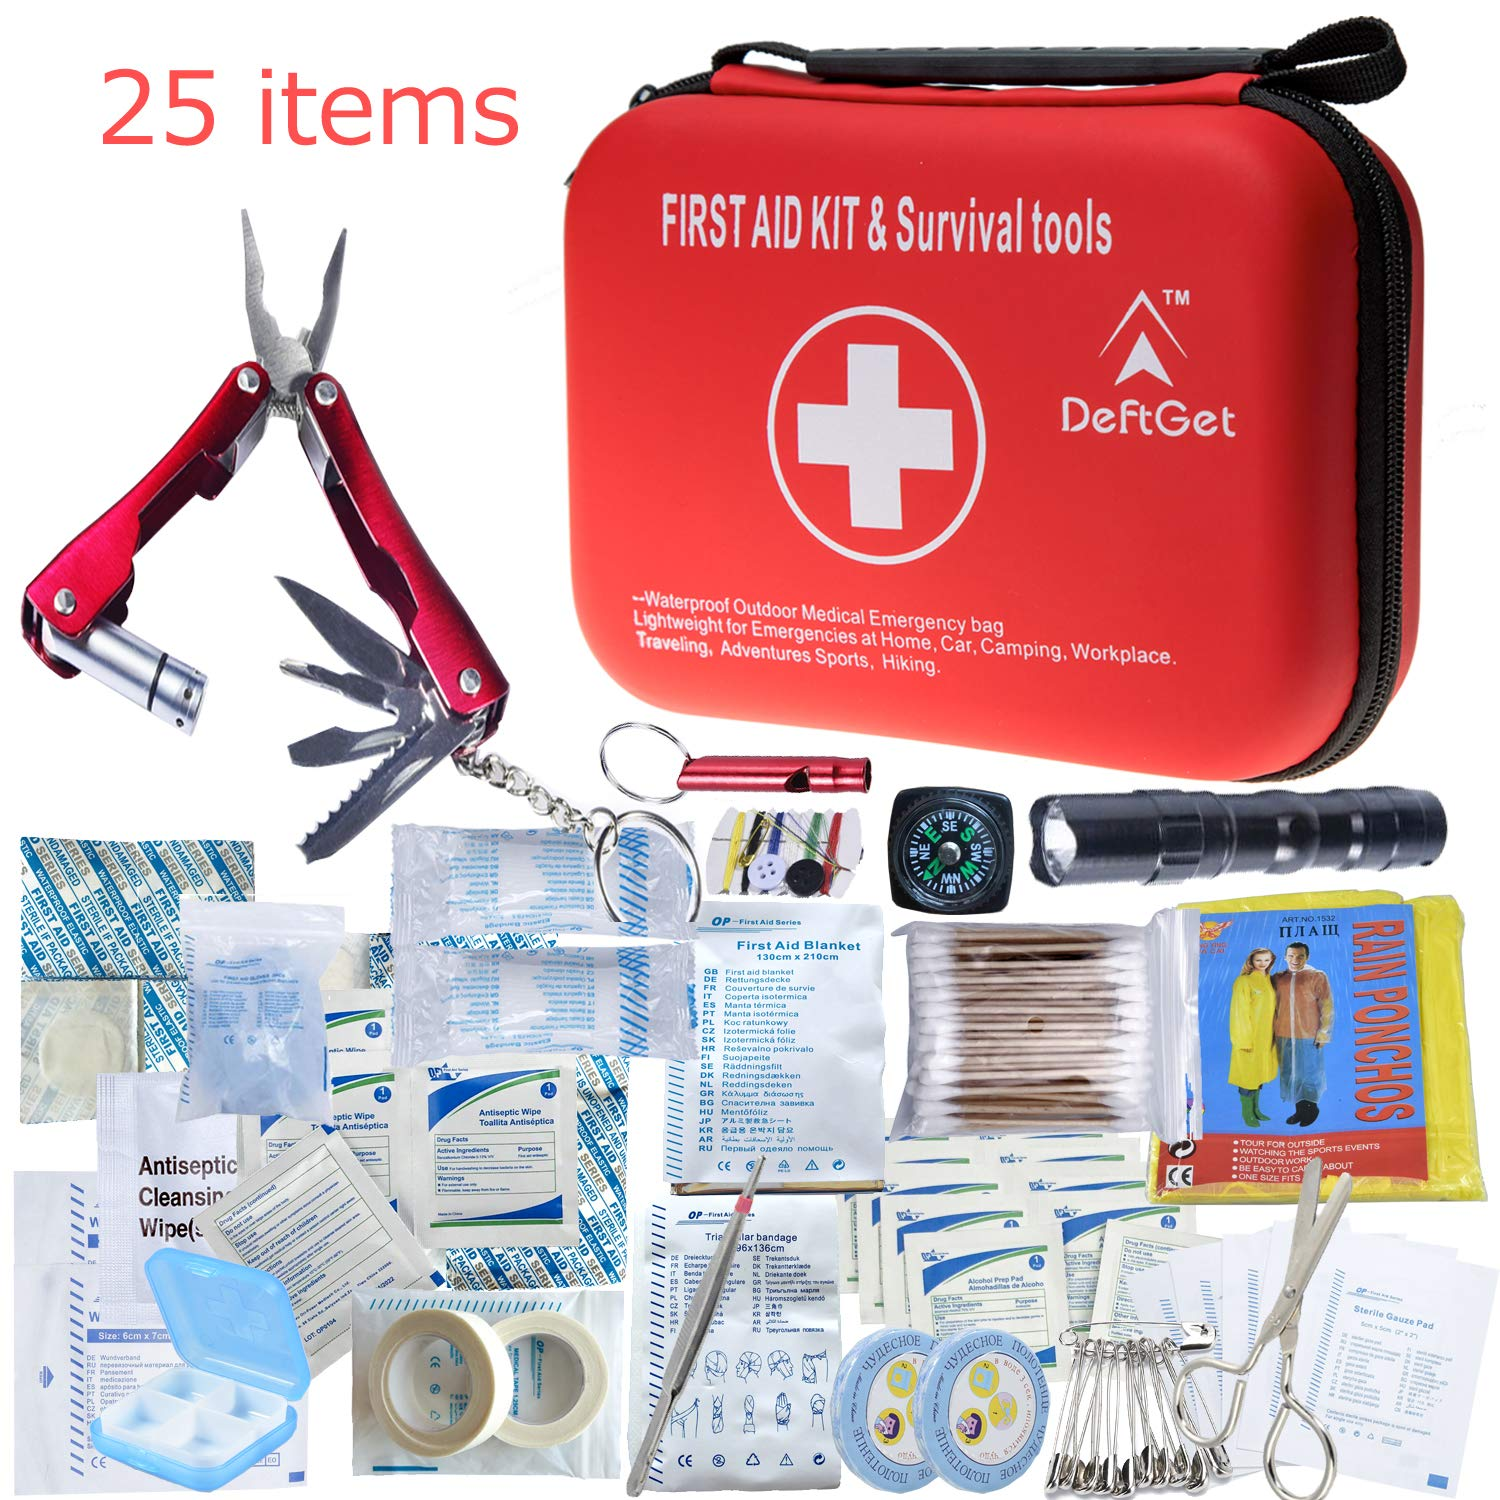 DeftGet Compact First Aid Kit - Mini Survival Tools Box - Waterproof Outdoor Medical Emergency Bag Lightweight for Emergencies at Home Car Camping Workplace Traveling Adventures Sports Hiking by DeftGet